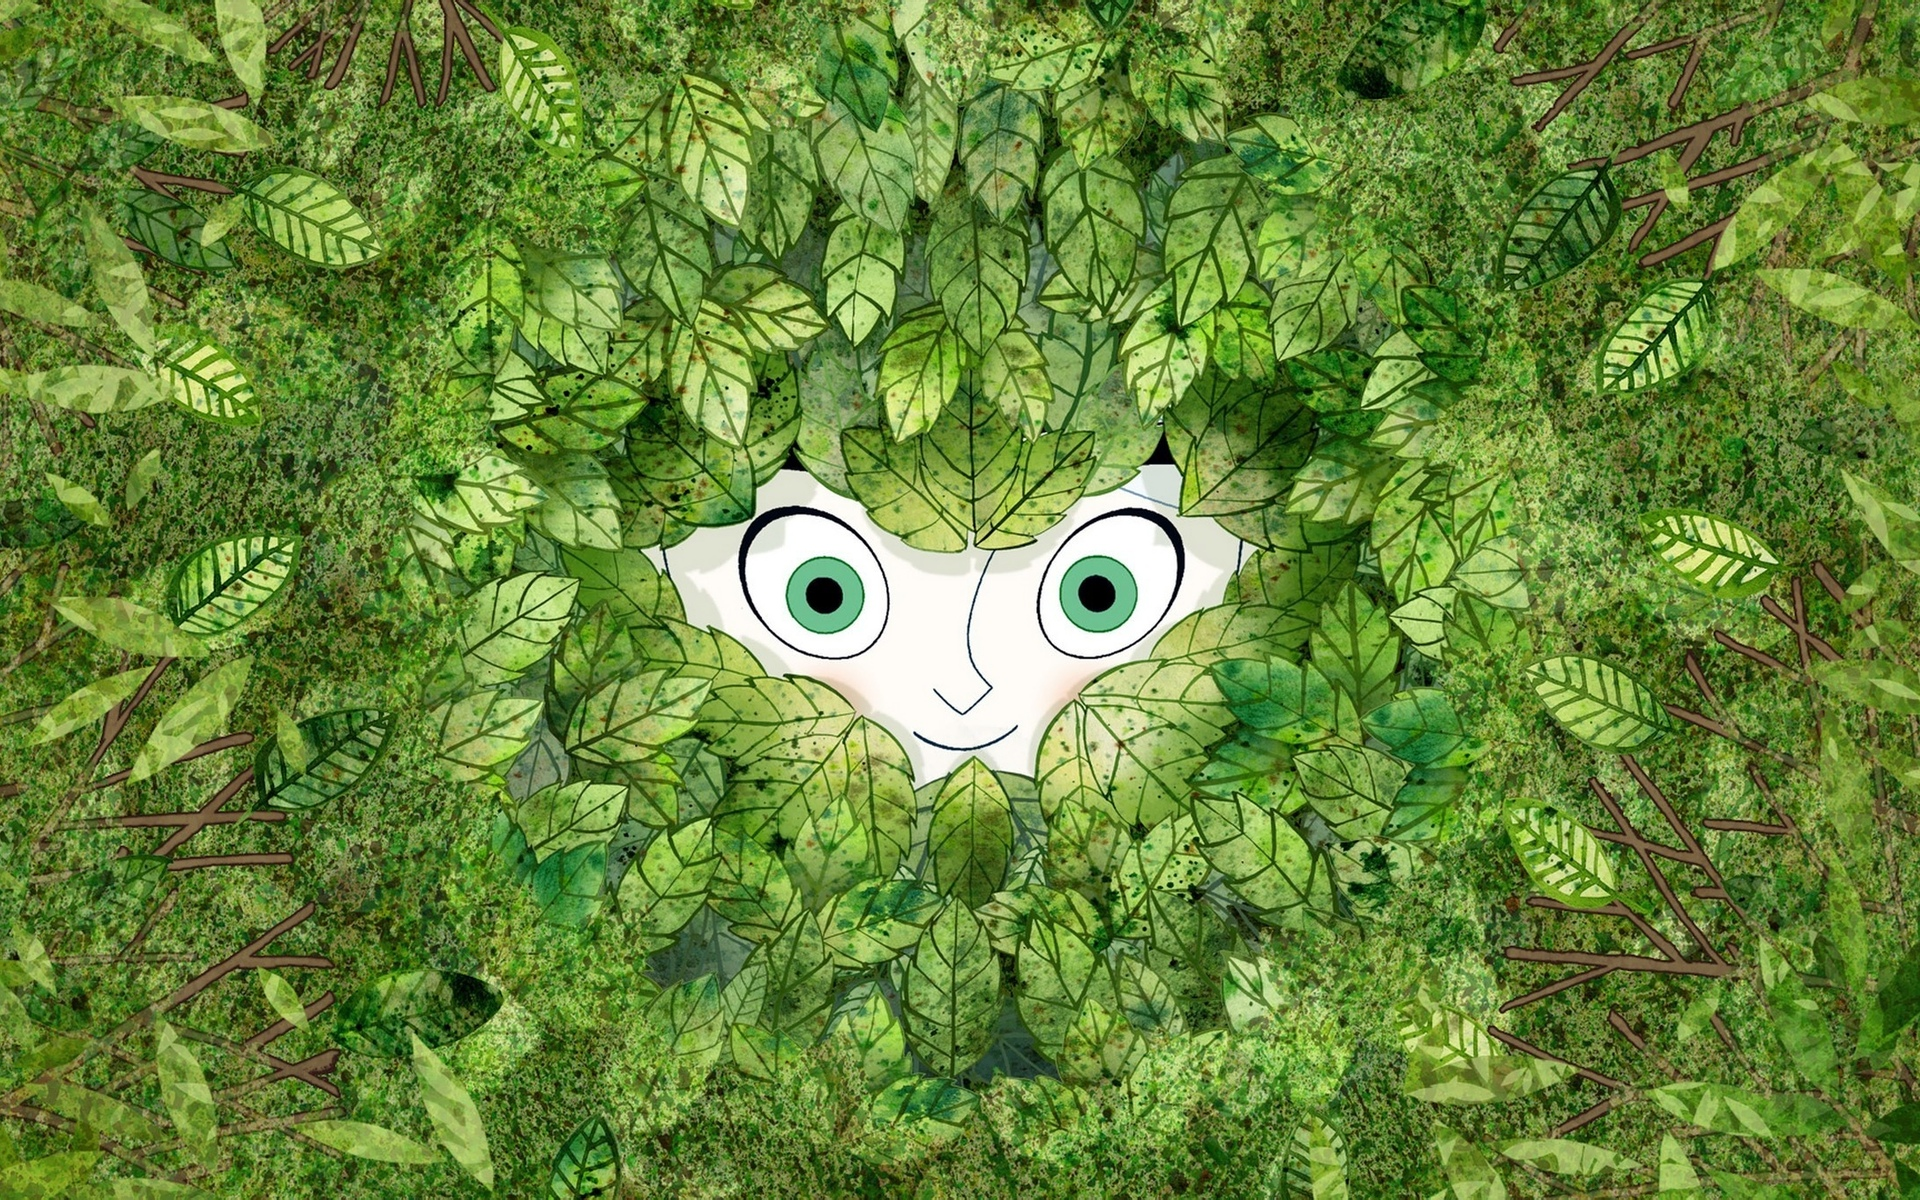 The Secret Of Kells Artistry Requires Bravery Let There